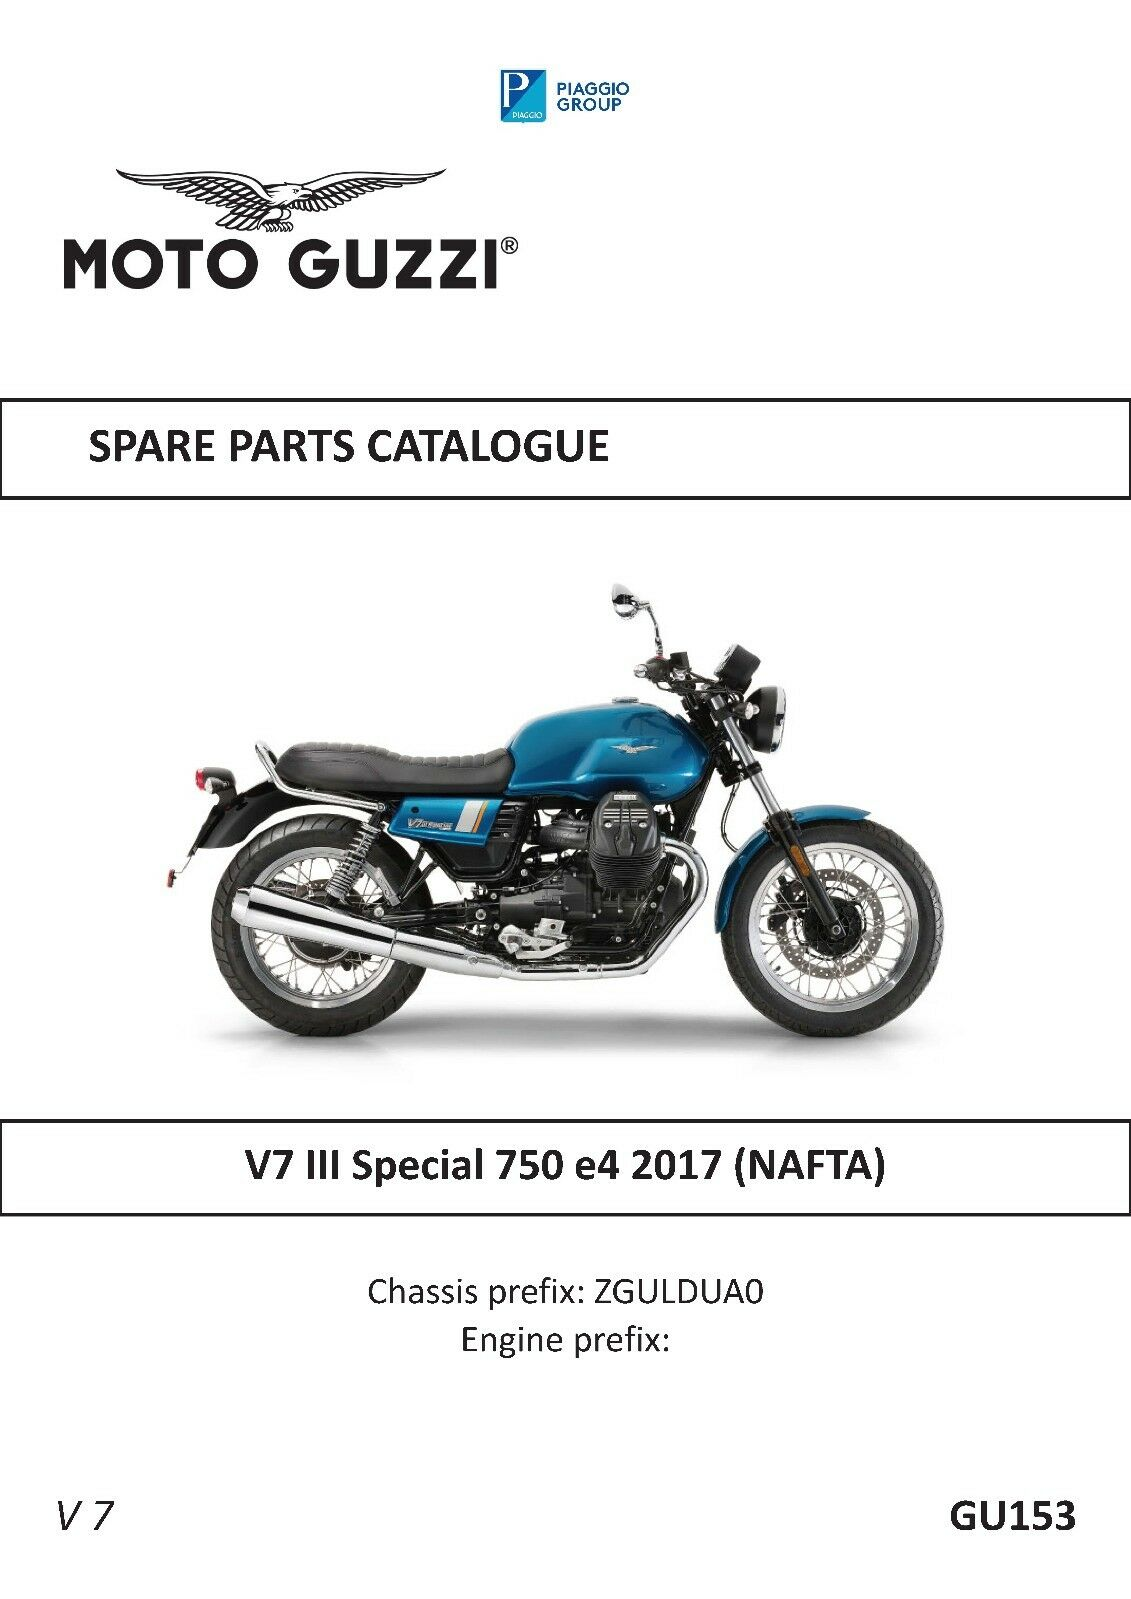 Moto Guzzi Parts Manual Book 2017 V7 Iii Special 750 E4 1750 Motorcycle Engine Diagram 1 Of 12only Available